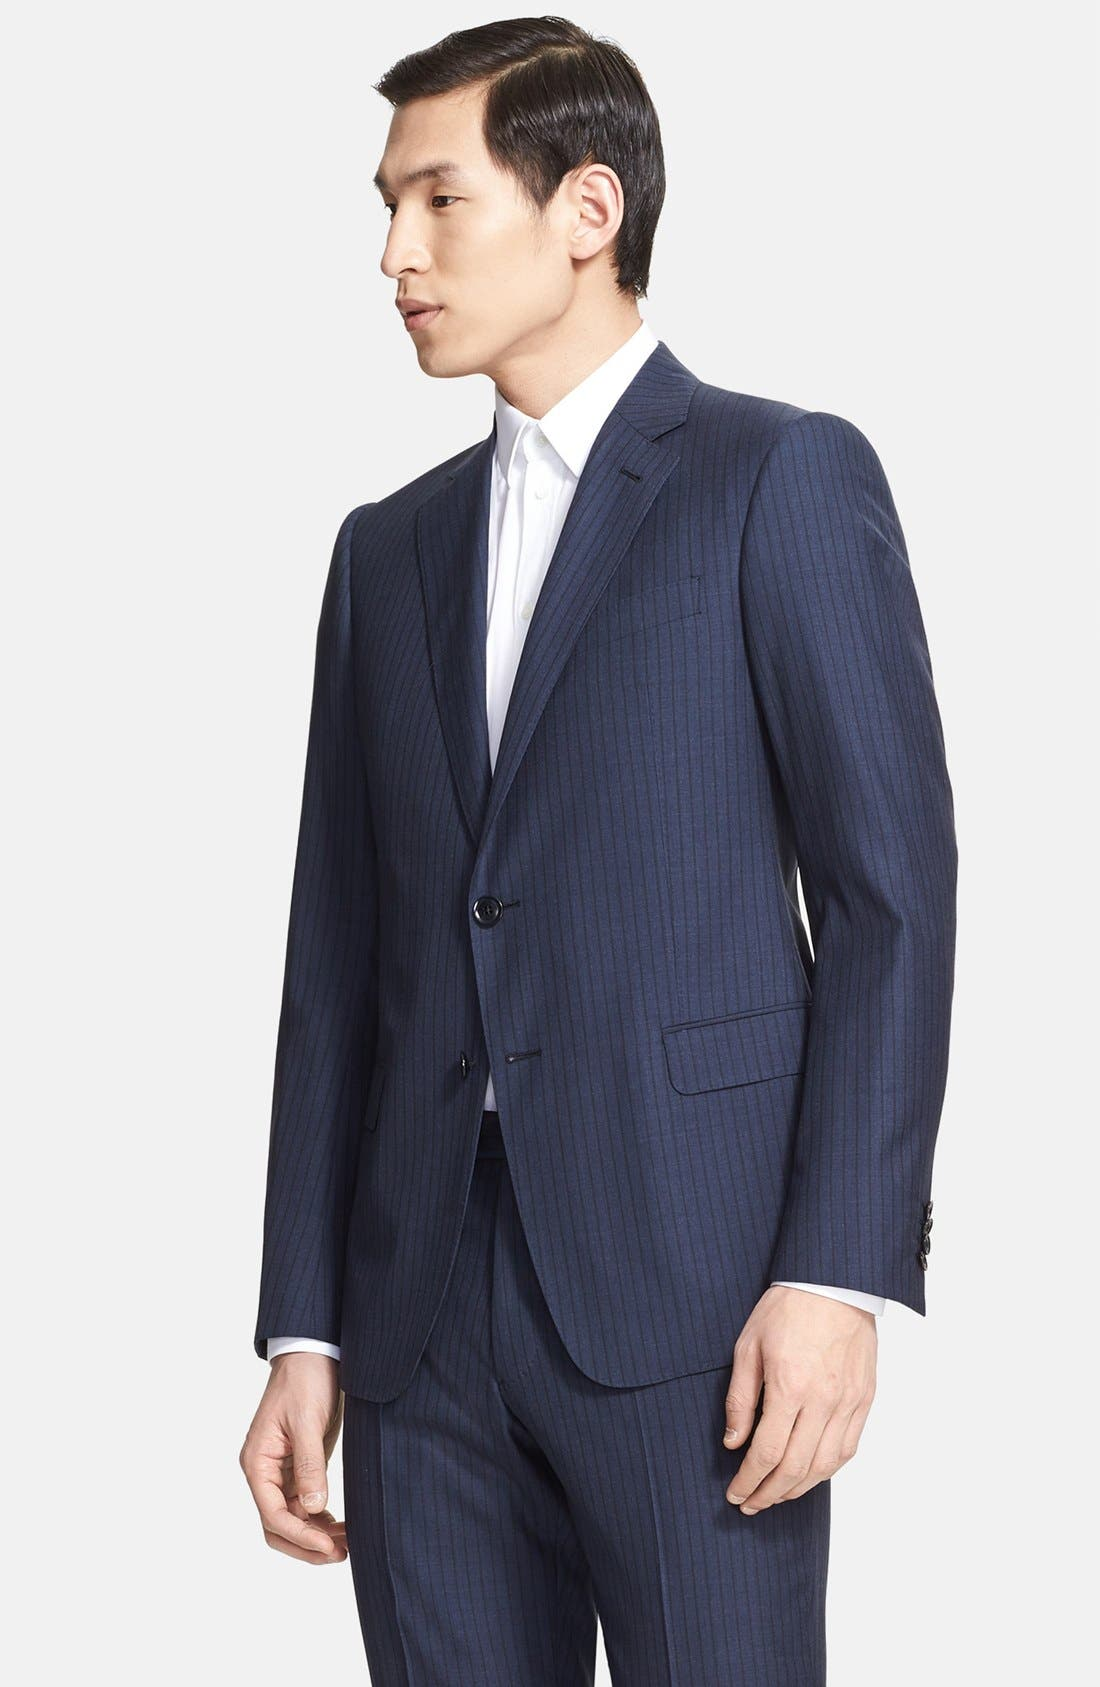 Alternate Image 3  - Armani Collezioni 'Sartorial' Pinstripe Wool Blend Suit